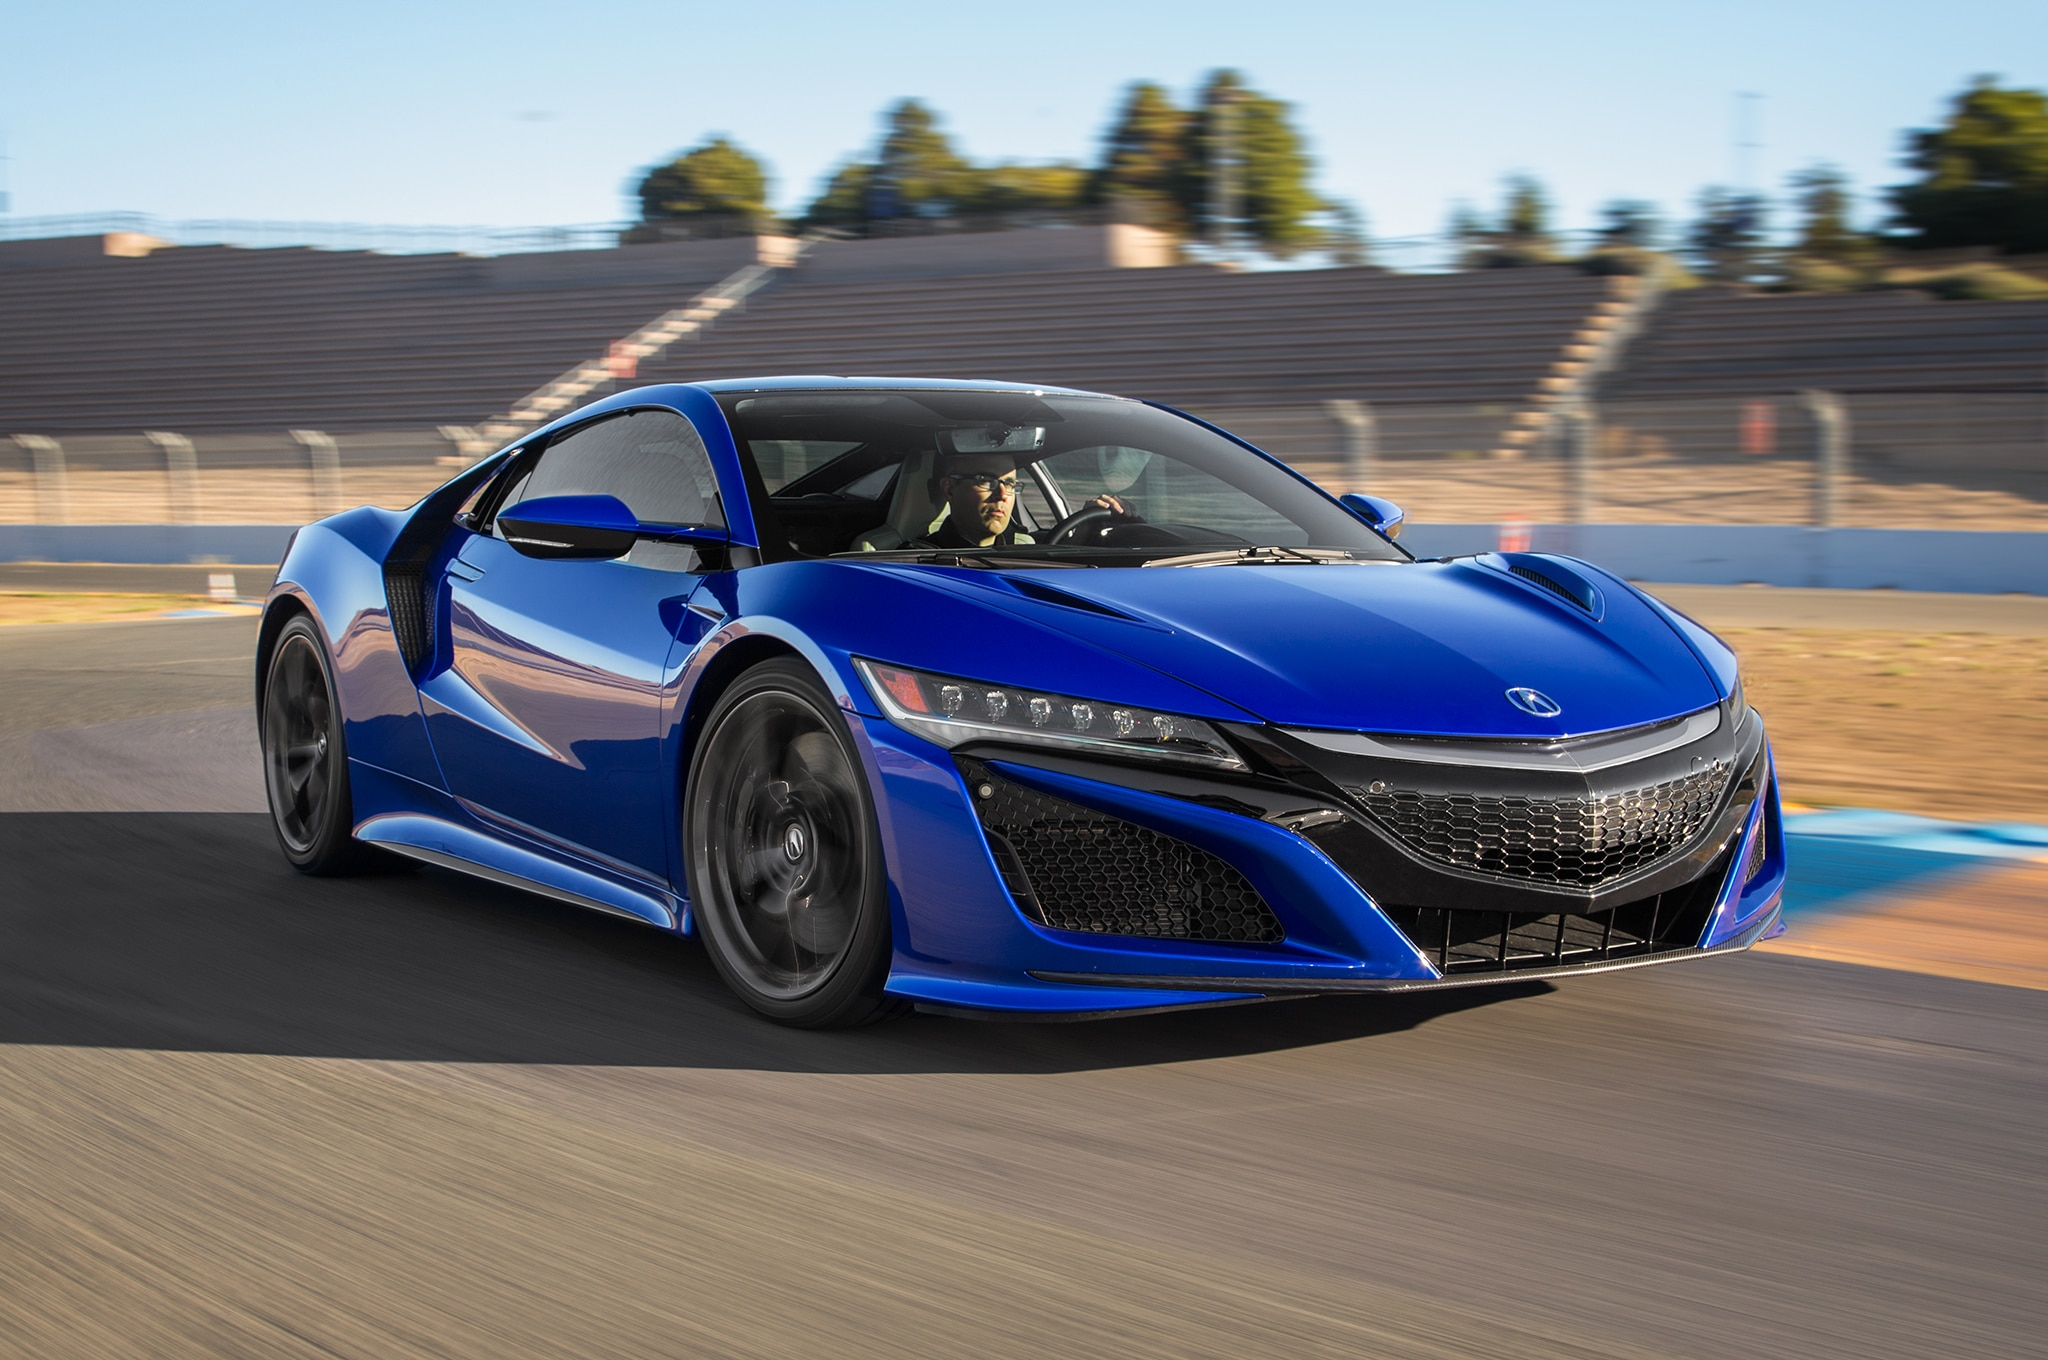 2017 acura nsx david lee roth featured in super bowl commercial. Black Bedroom Furniture Sets. Home Design Ideas